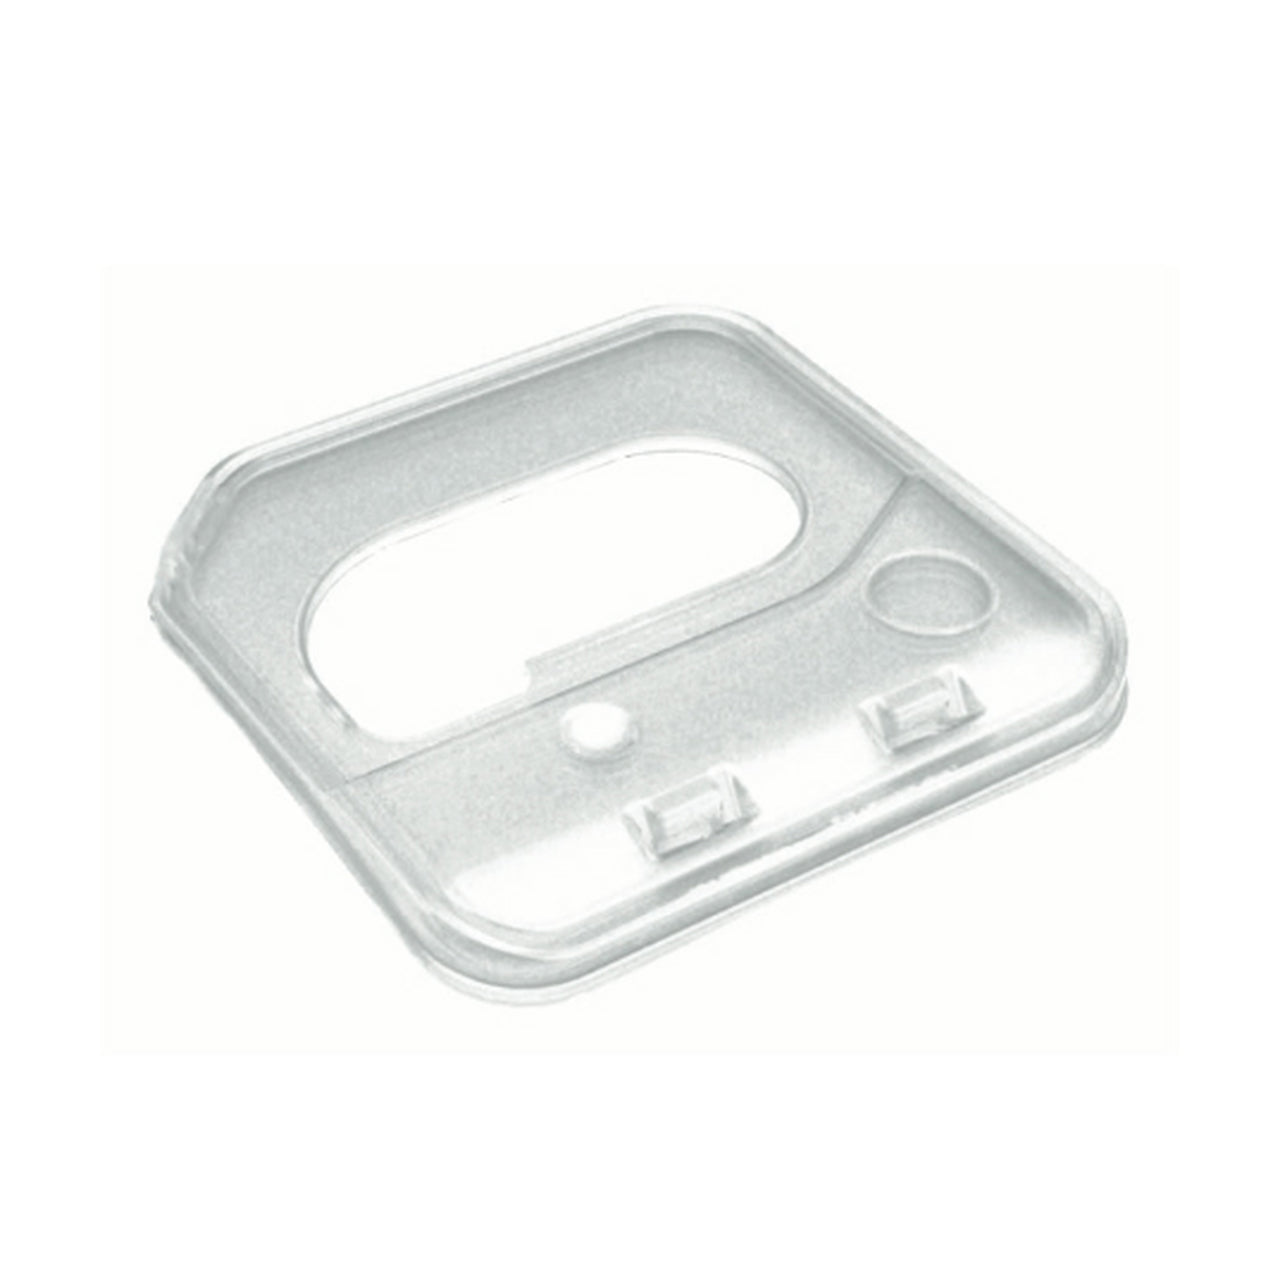 ResMed H5i Flip Lid Seal by ResMed from Easy CPAP